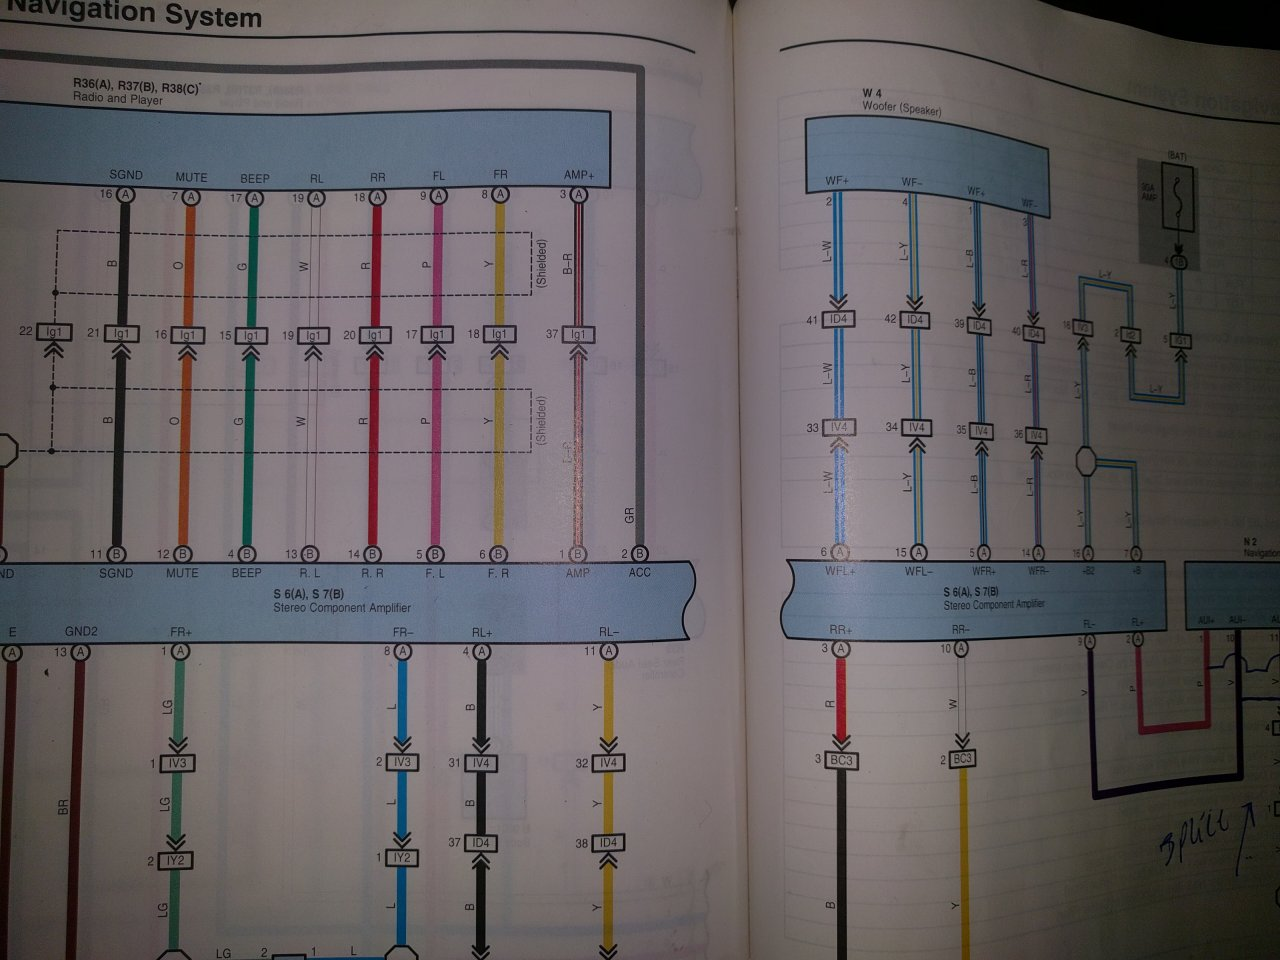 stereo wiring diagram for 03 100 series ih8mud forum  at bakdesigns.co